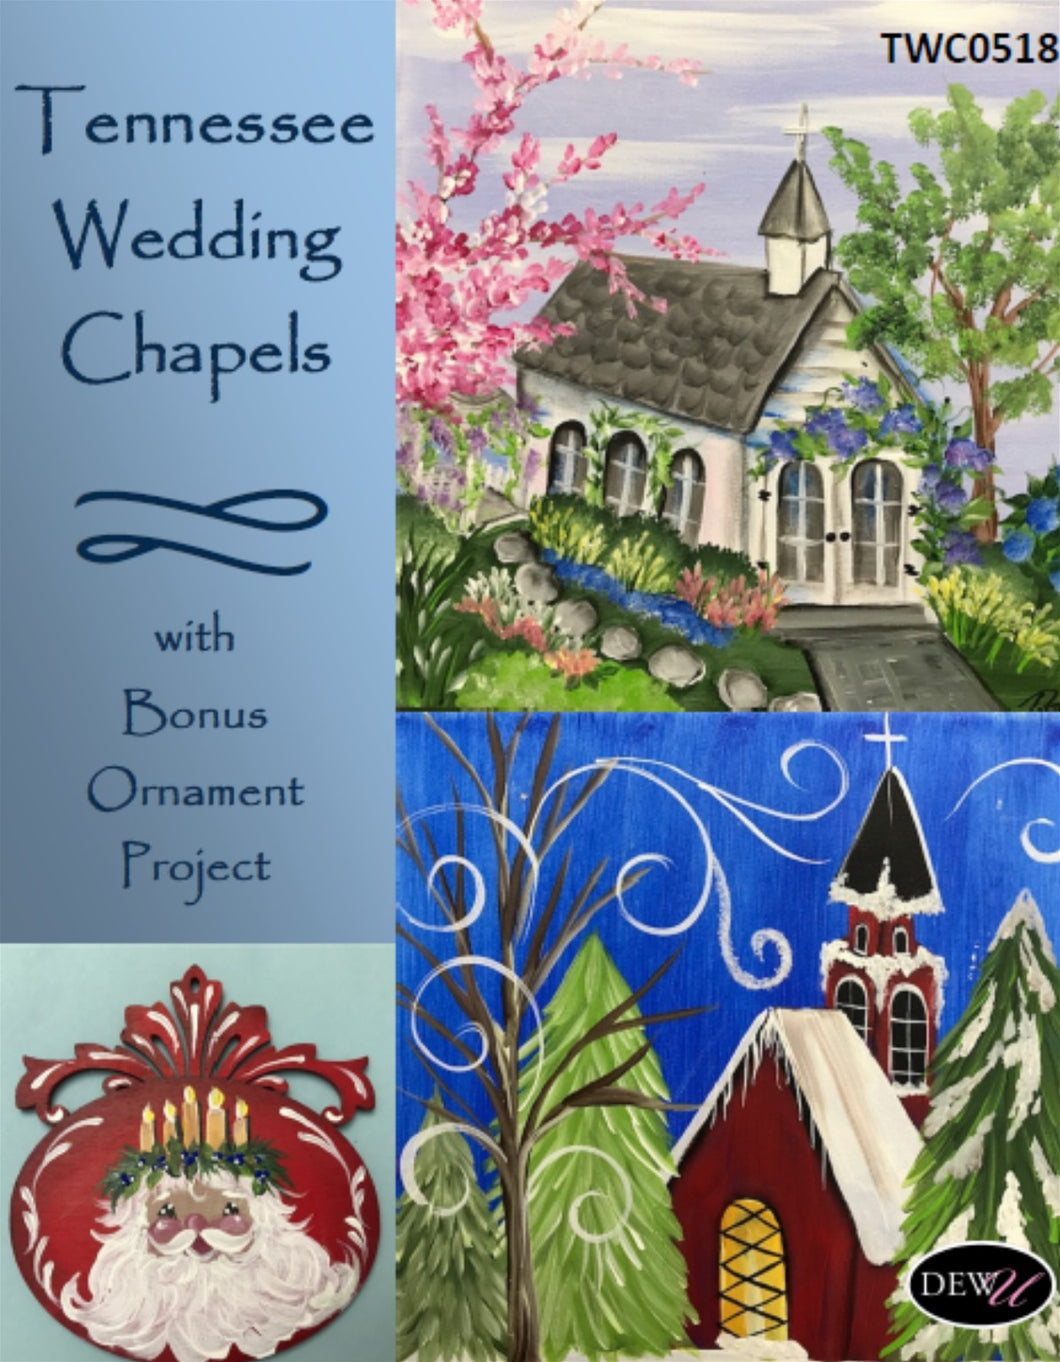 Tennessee Wedding Chapels and Bonus Ornament-PP